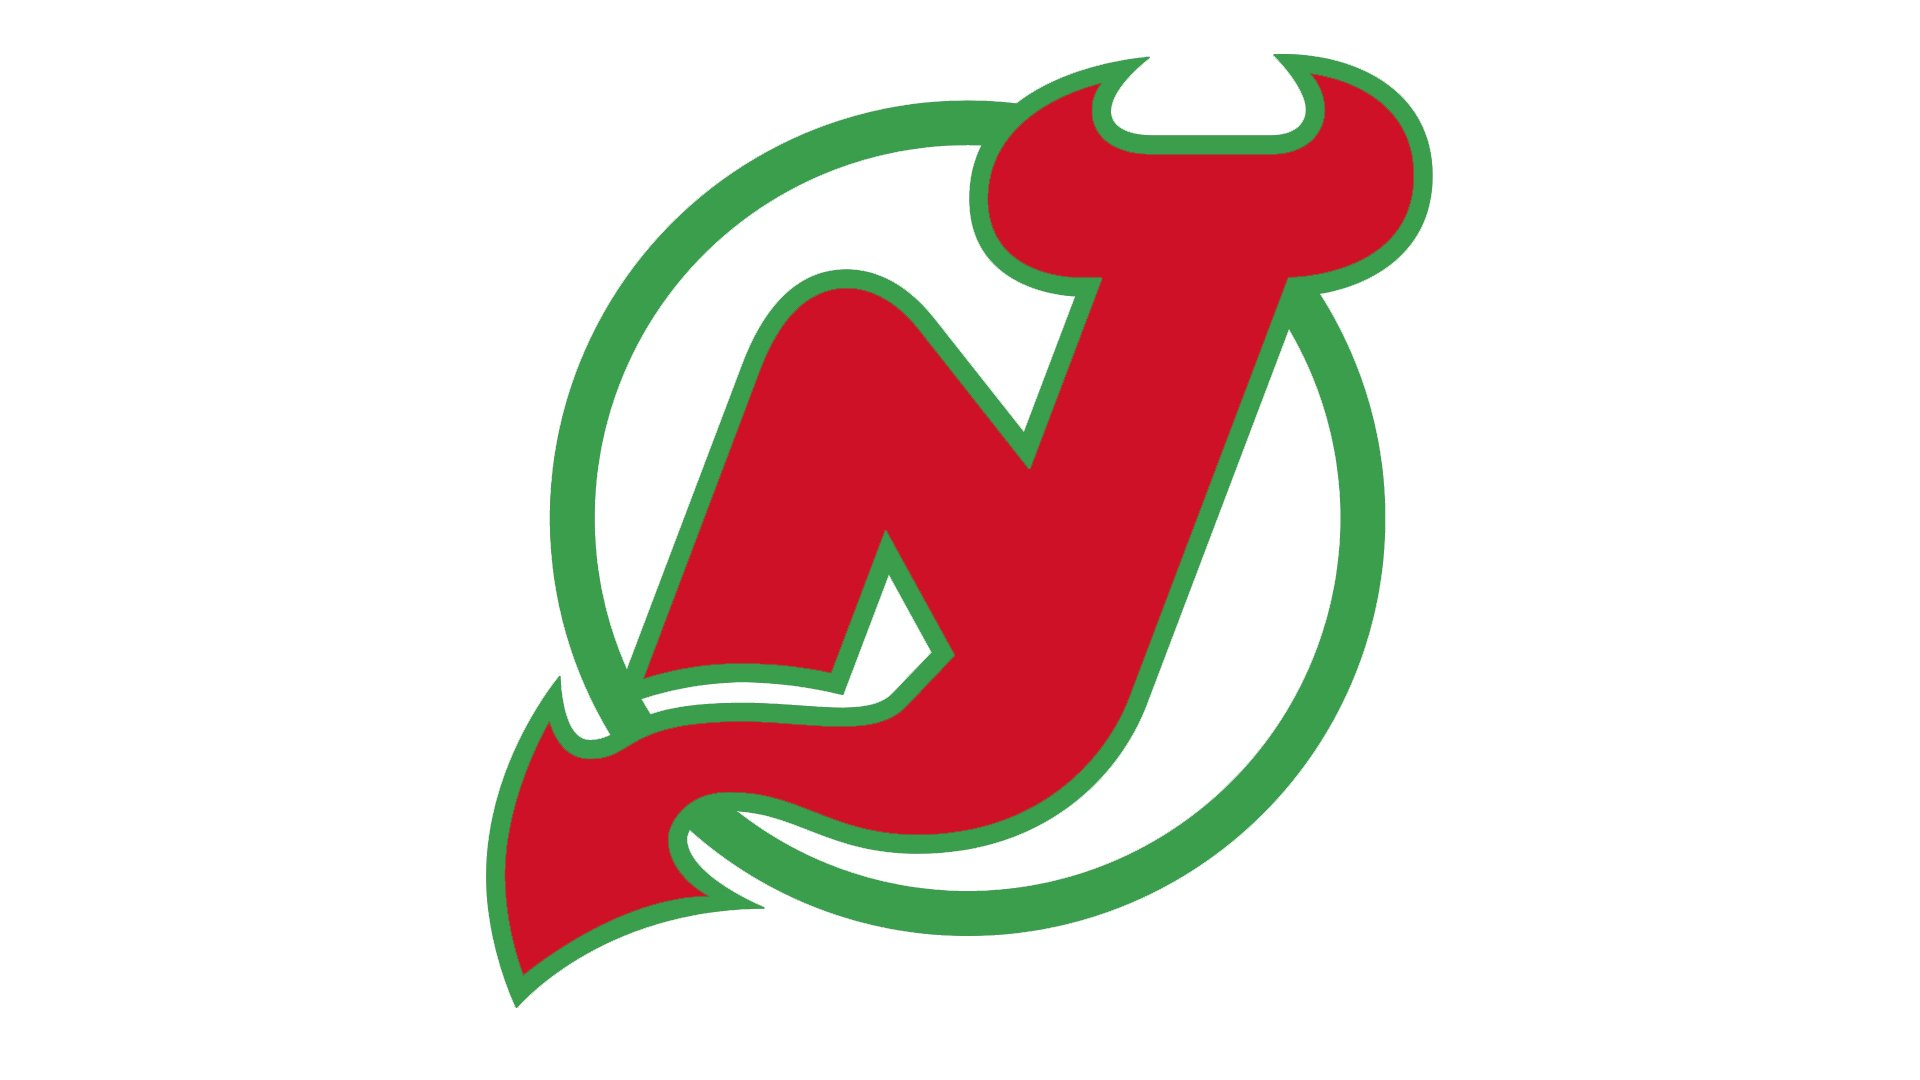 new jersey devils logo  new jersey devils symbol  meaning  history and evolution